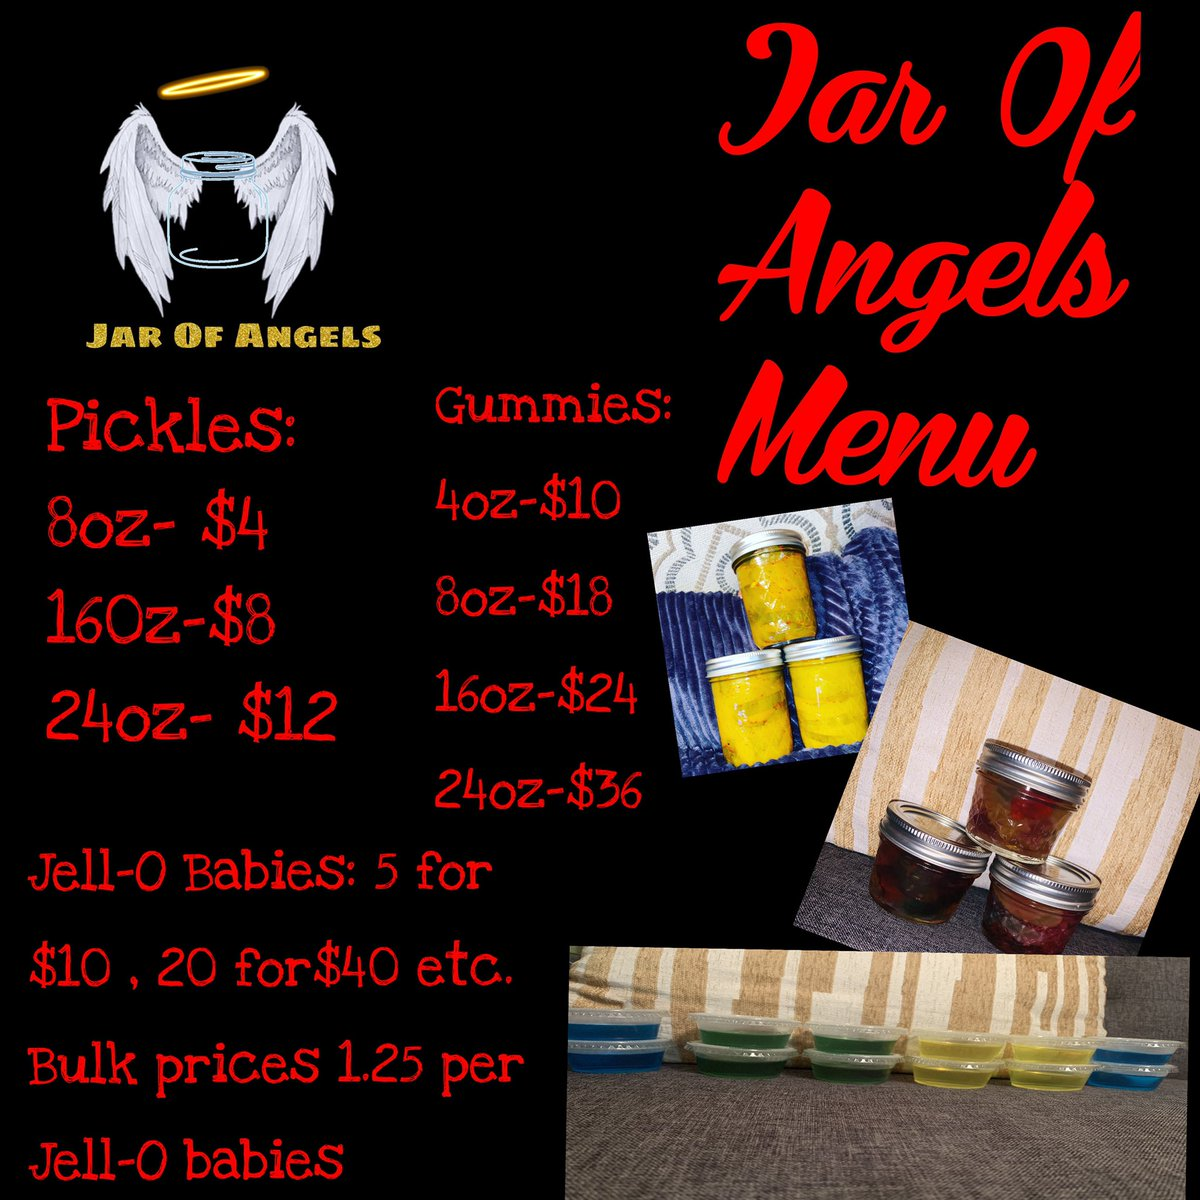 Heyy yall‼️‼️‼️  Go ahead and get place your orders today ‼️‼️  Everything is made the way you want it ‼️‼️ Be sure to place your orders on my website  https://t.co/bA50I4VFRm ‼️‼️‼️   #J.O.A. #wemail #jarofangels #infused #pickles #houston #houstoncandybuffets #houstongummies https://t.co/DWFCpVV8wv